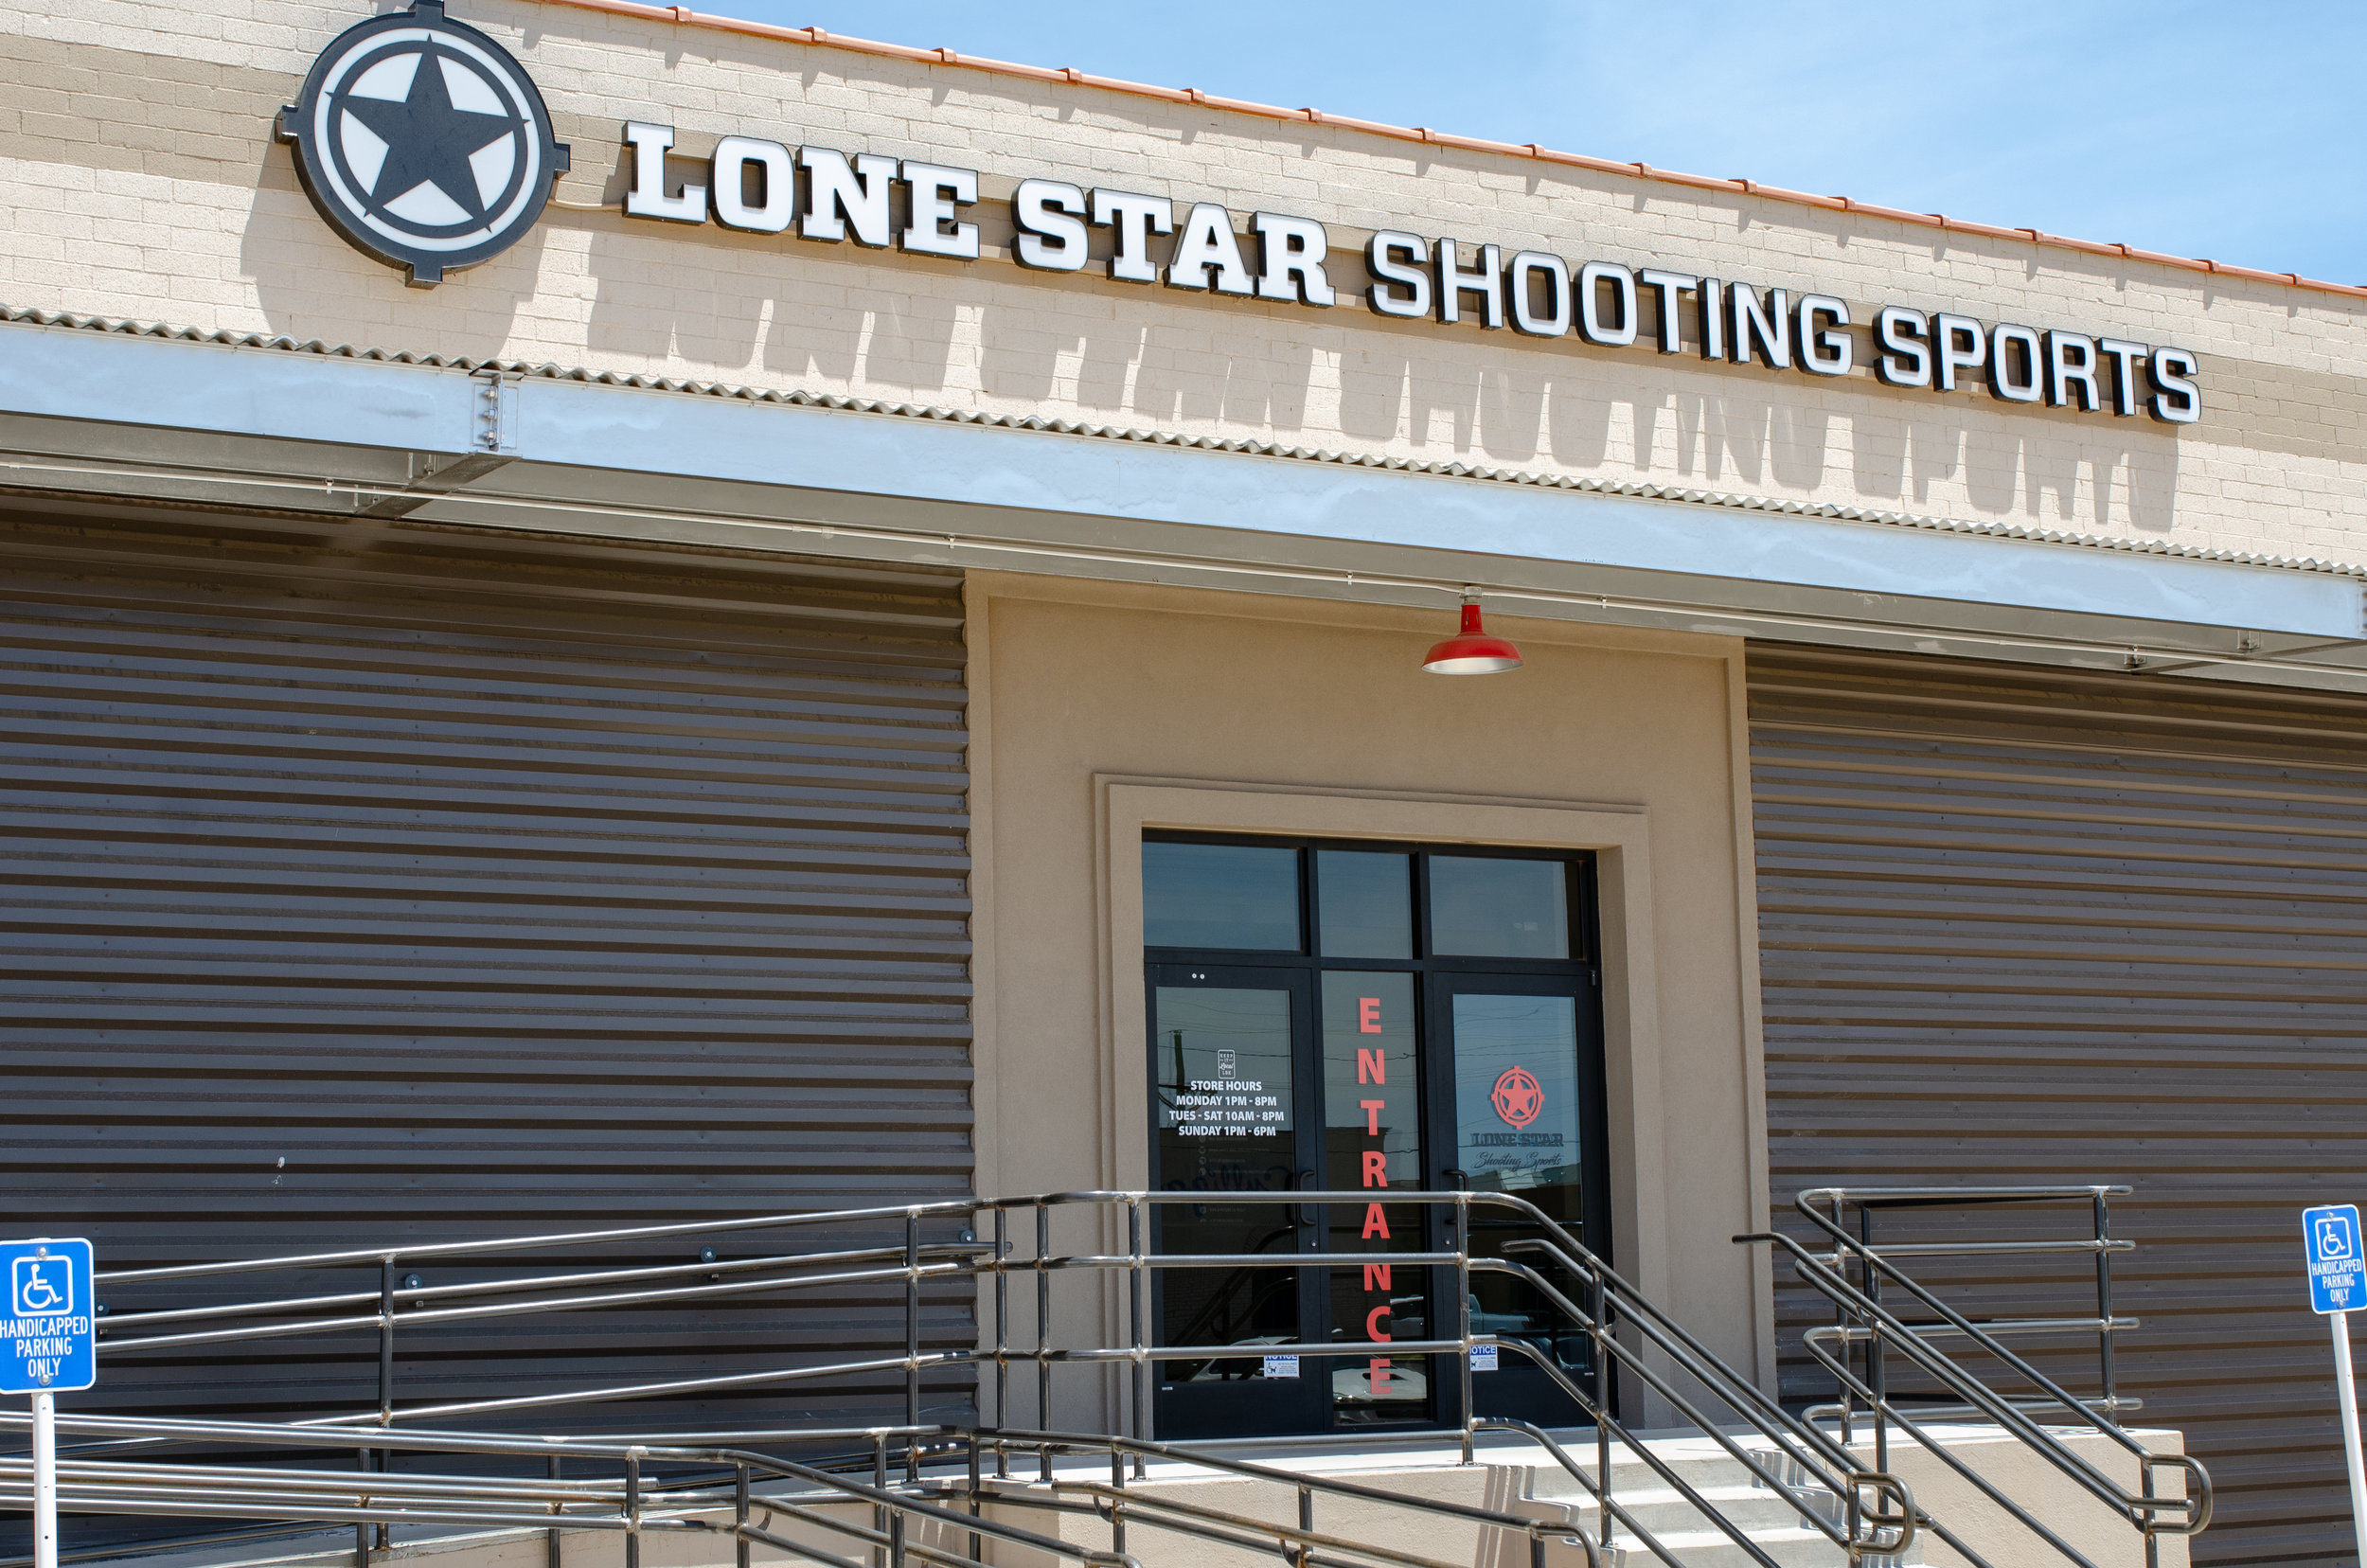 Store info - Phone: (806) 993-2264Location: 6020 43rd StSocial:FacebookWebsite: www.lonestarshootingsports.comHours: Monday1pm - 8pmTuesday - Saturday10am - 8pmSunday1pm - 6pm